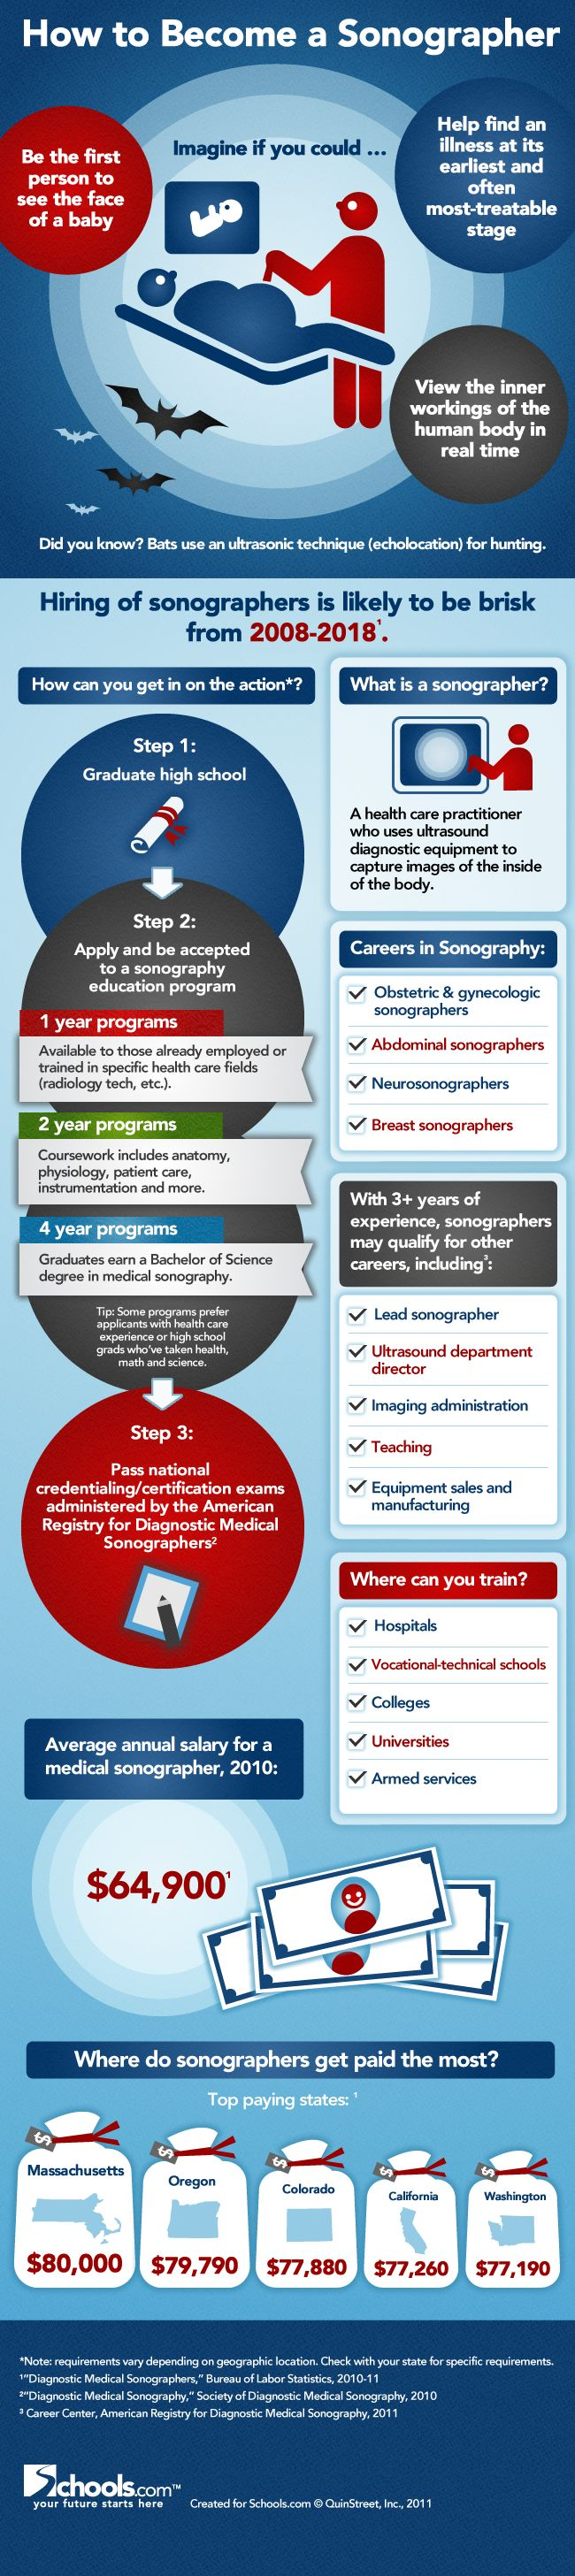 How To Become a Sonographer.  Love/Hate relationship with this graphic mostly because ultrasound is more dynamic in its uses beyond fetal ultrasound which is grossly overlooked.  Despite that, the message is get experience and a preferably a bachelors degree in ultrasound  from an accredited program that will enable you to sit for the ARDMS registry exams. No registry = unlikely to find a job.